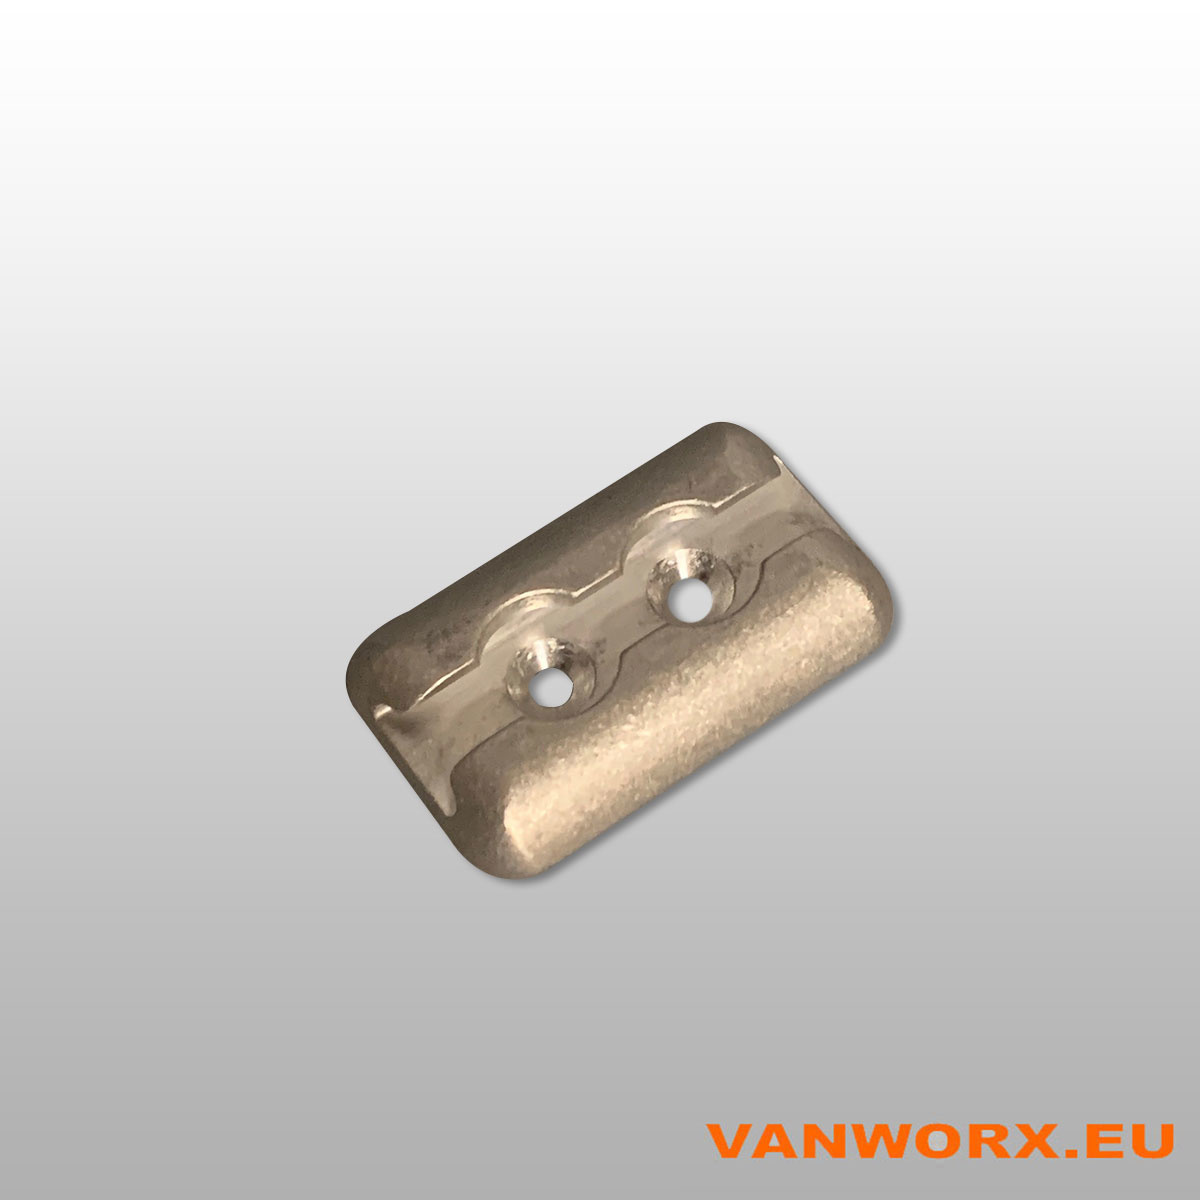 Anchor plate for airline rails